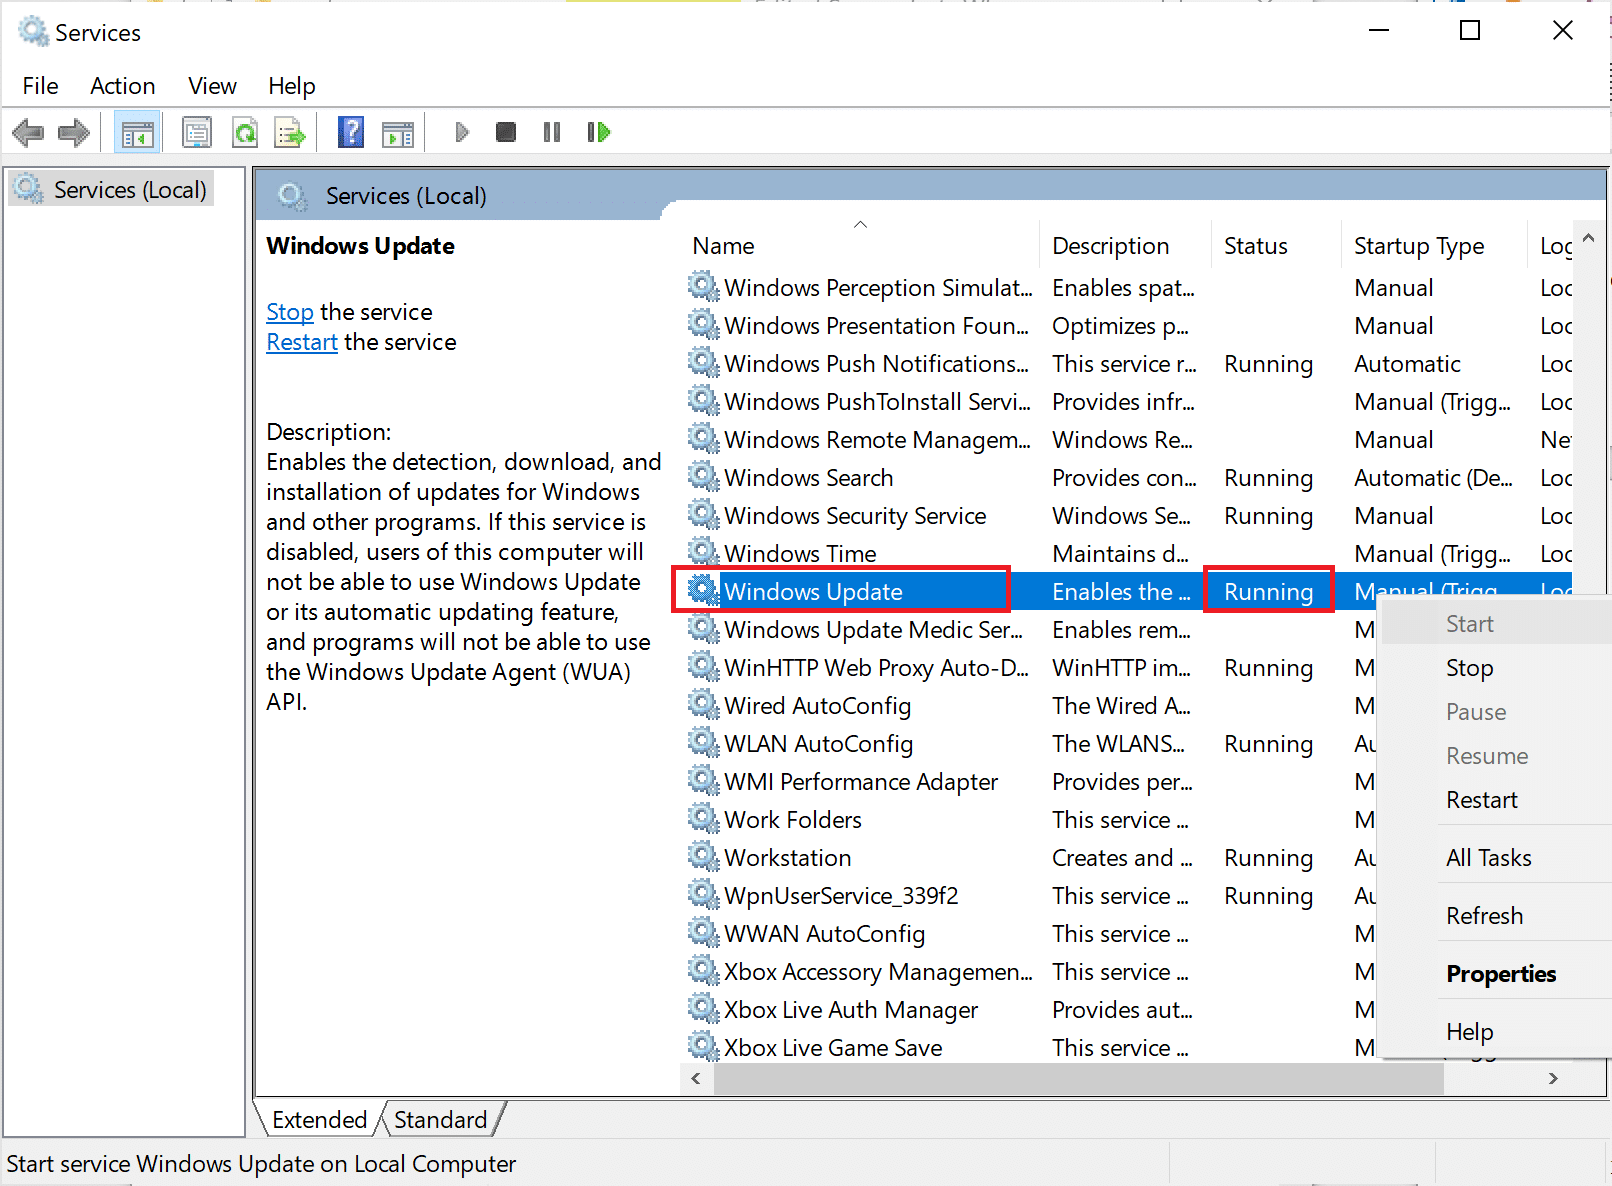 Right-click on Windows Update service and choose Start